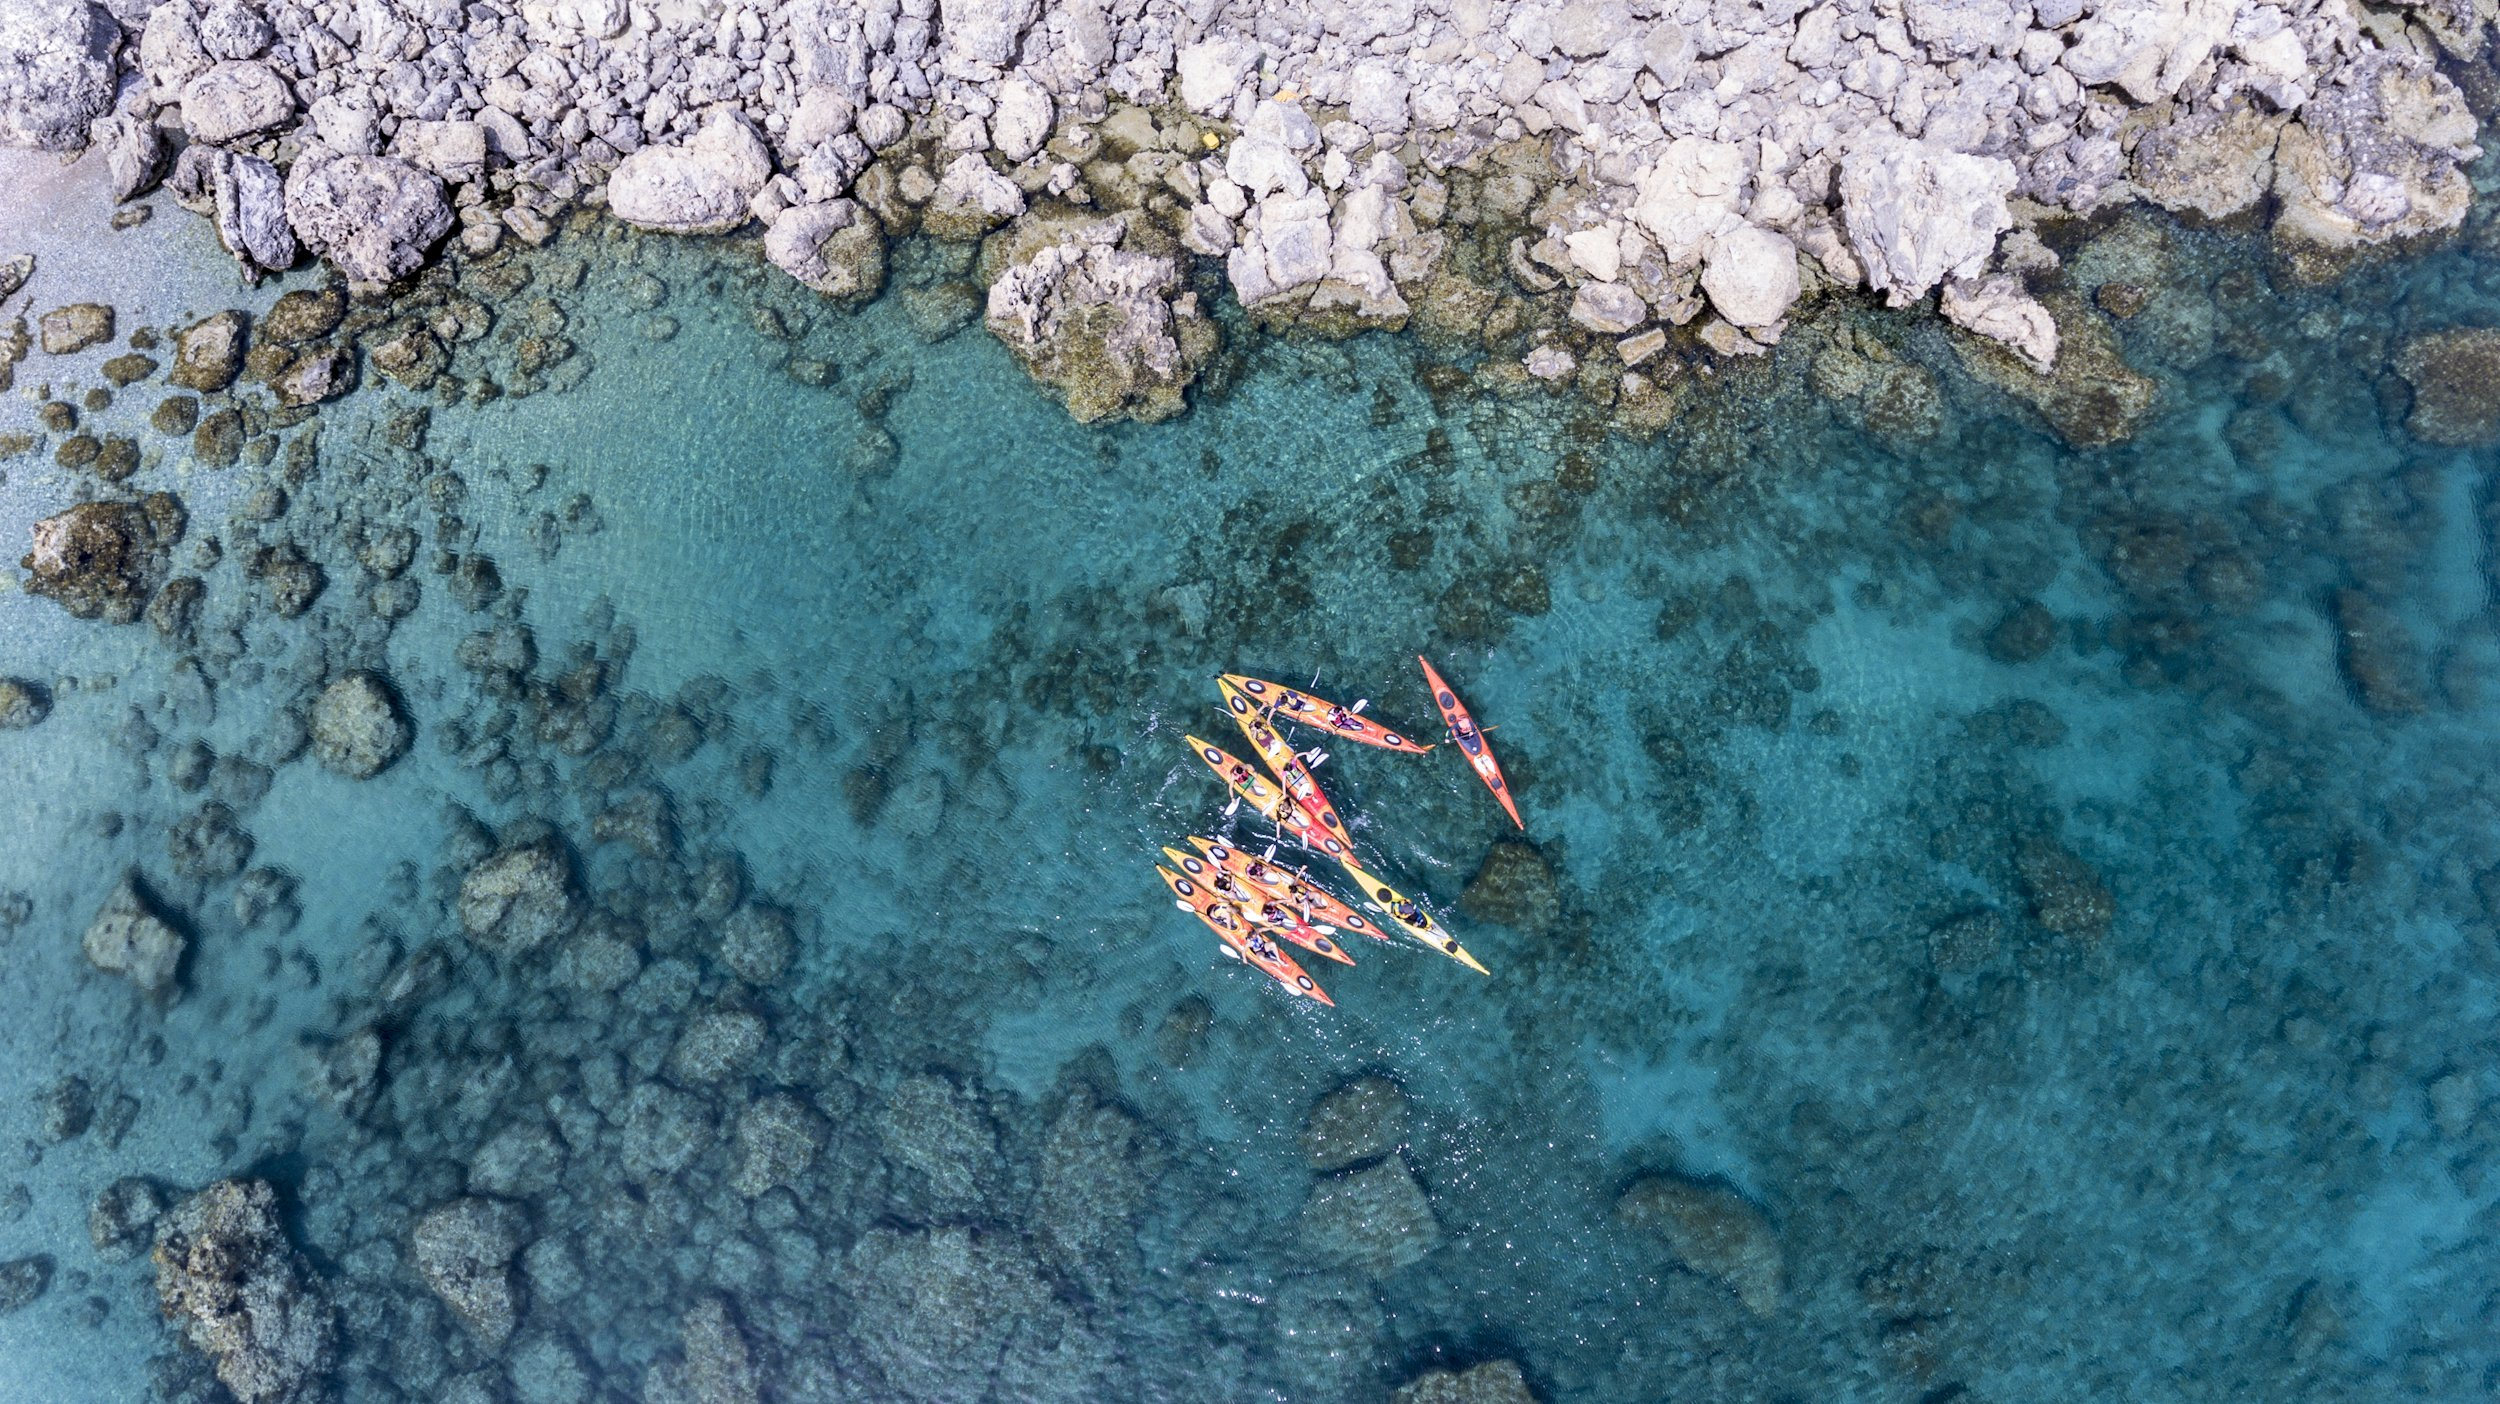 Feel The Calmness Of The Environment And Enjoy The Big Blue Of The Mediterranean Sea In Our Sea Kayak Half Day Tour